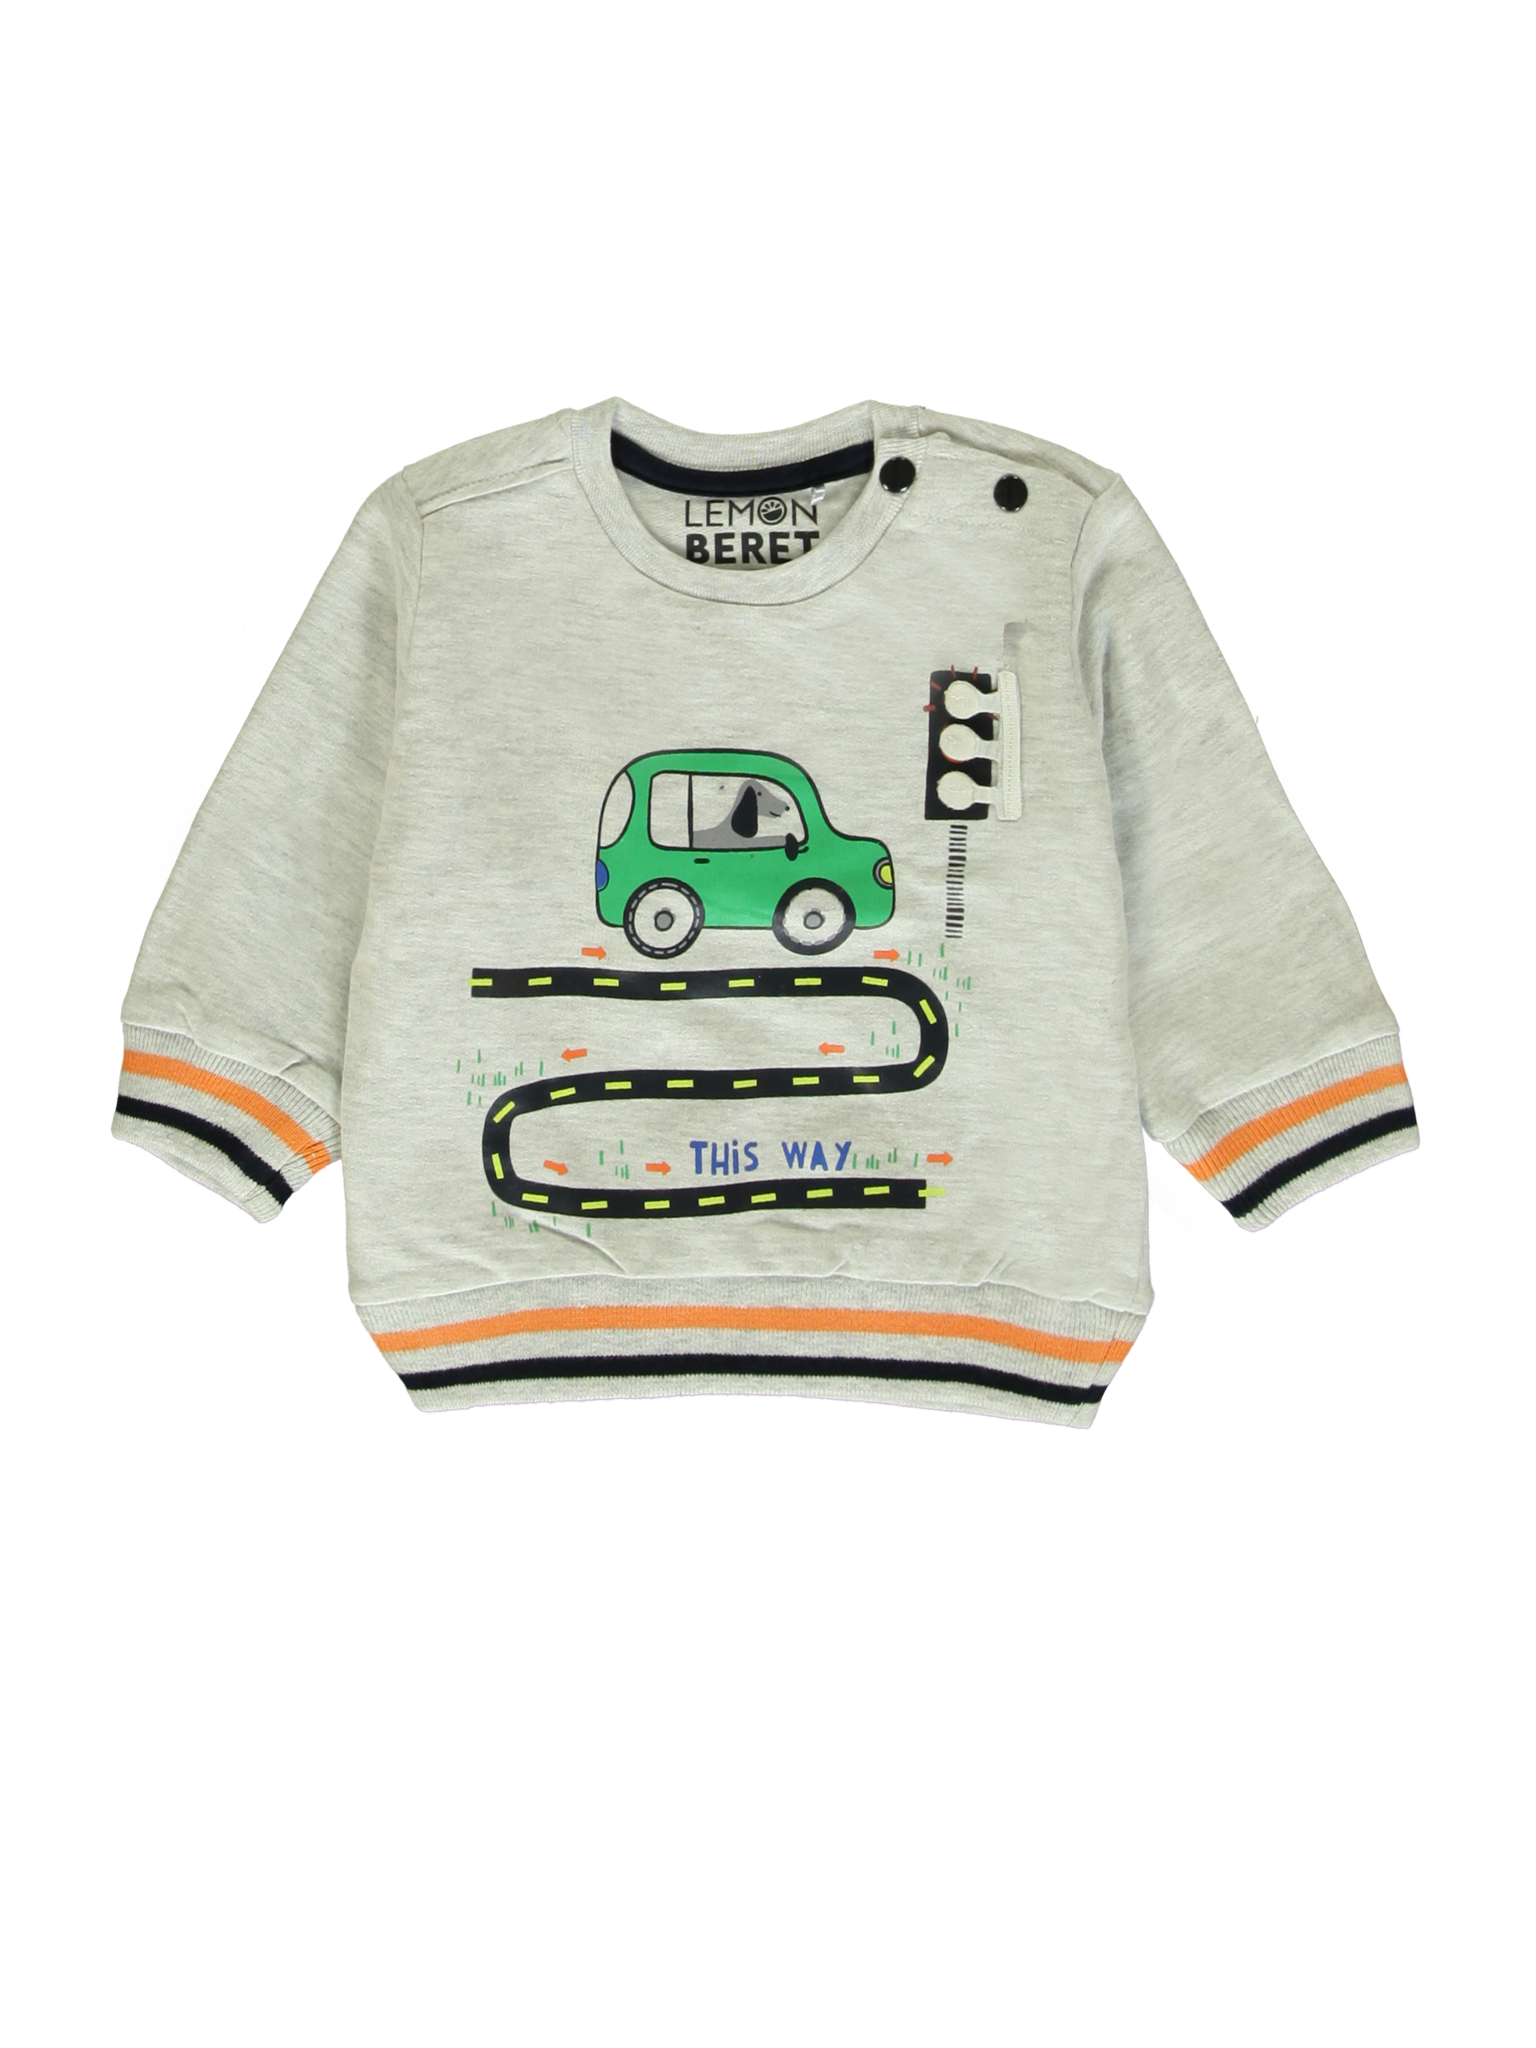 All Brands | Winterproducts Baby | Sweatshirt | 8 pcs/box